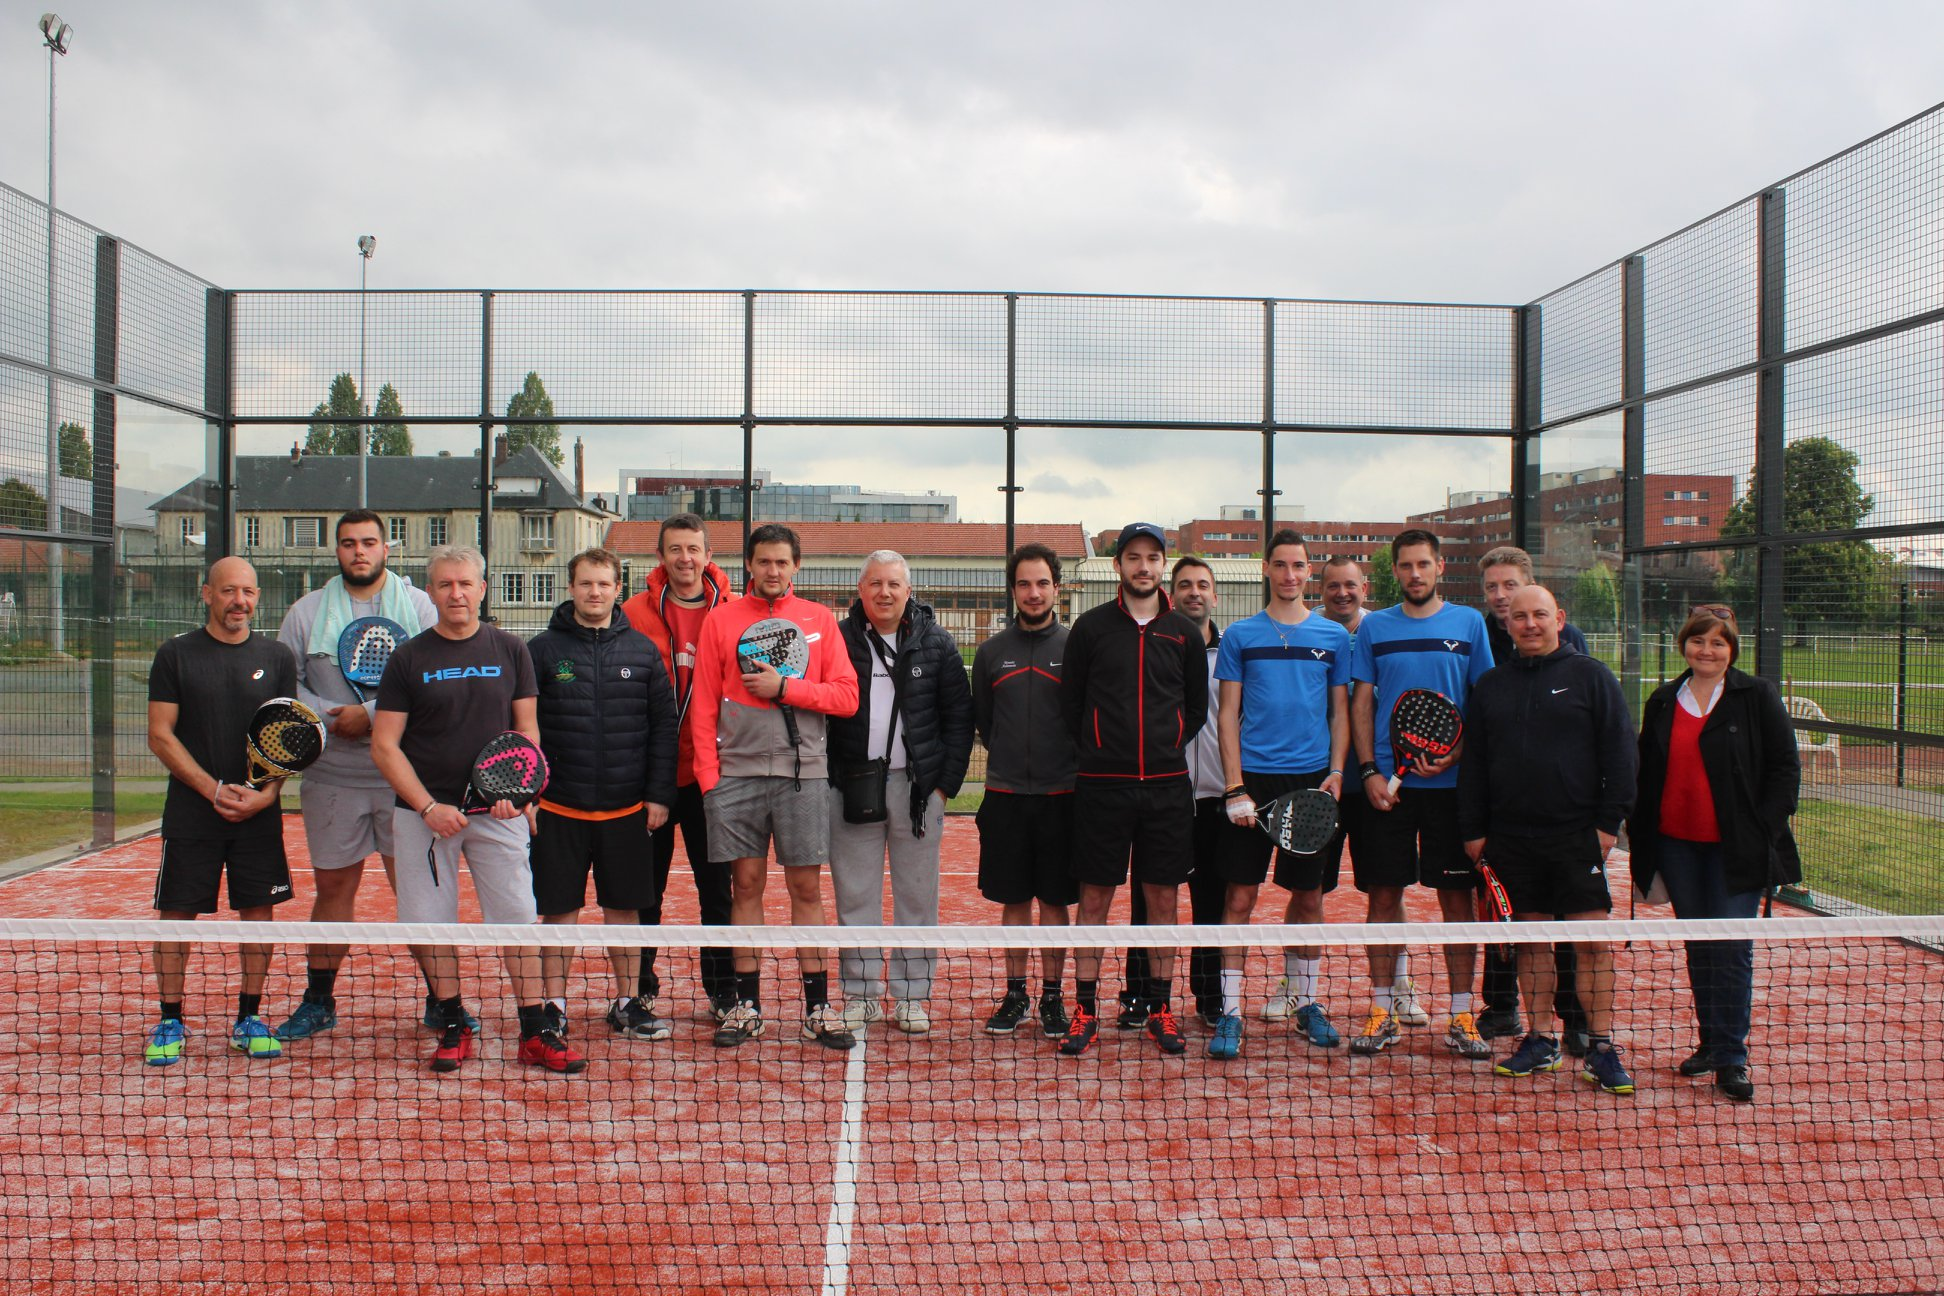 Championnats de France de Padel – Résultats des phases qualificatives Val d'Oise